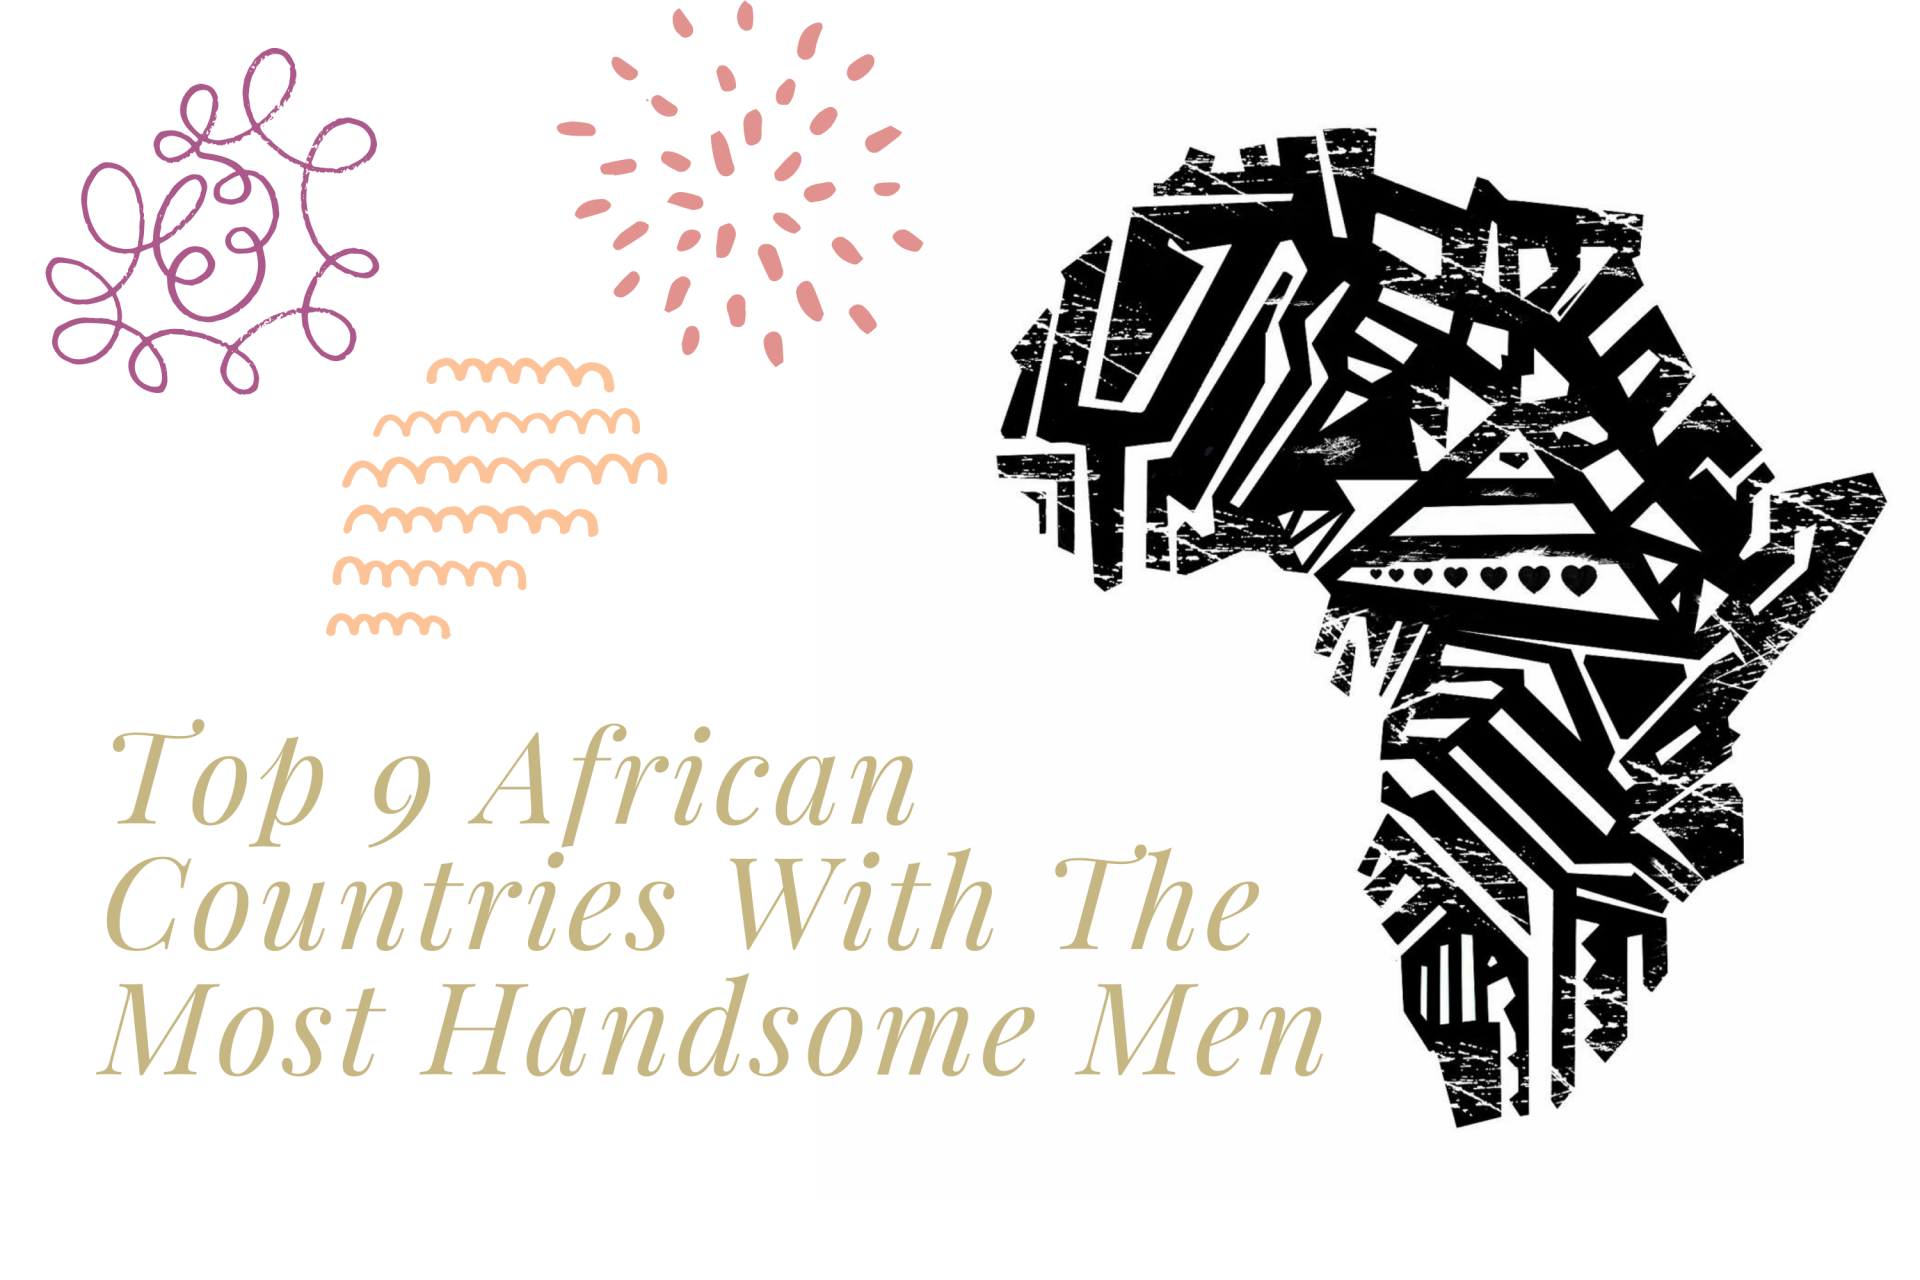 Top 9 African Countries With The Most Handsome Men